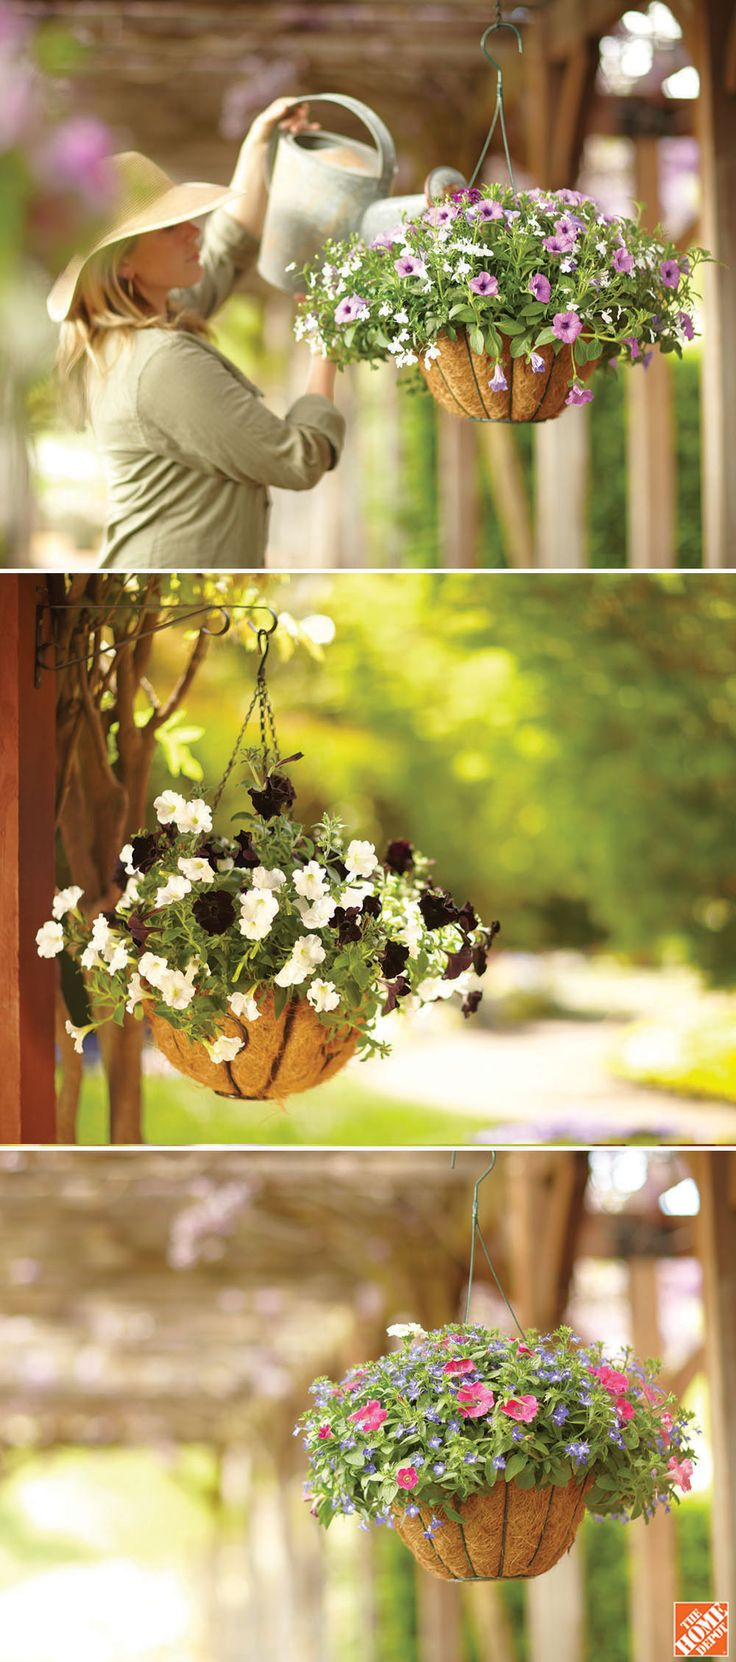 Mother's Day gift idea: Plant her favorite flowers in a coco-lined hanging basket. She'll be thrilled. Check out 9 more last minute Mother's Day gift ideas at The Home Depot's Garden Club.